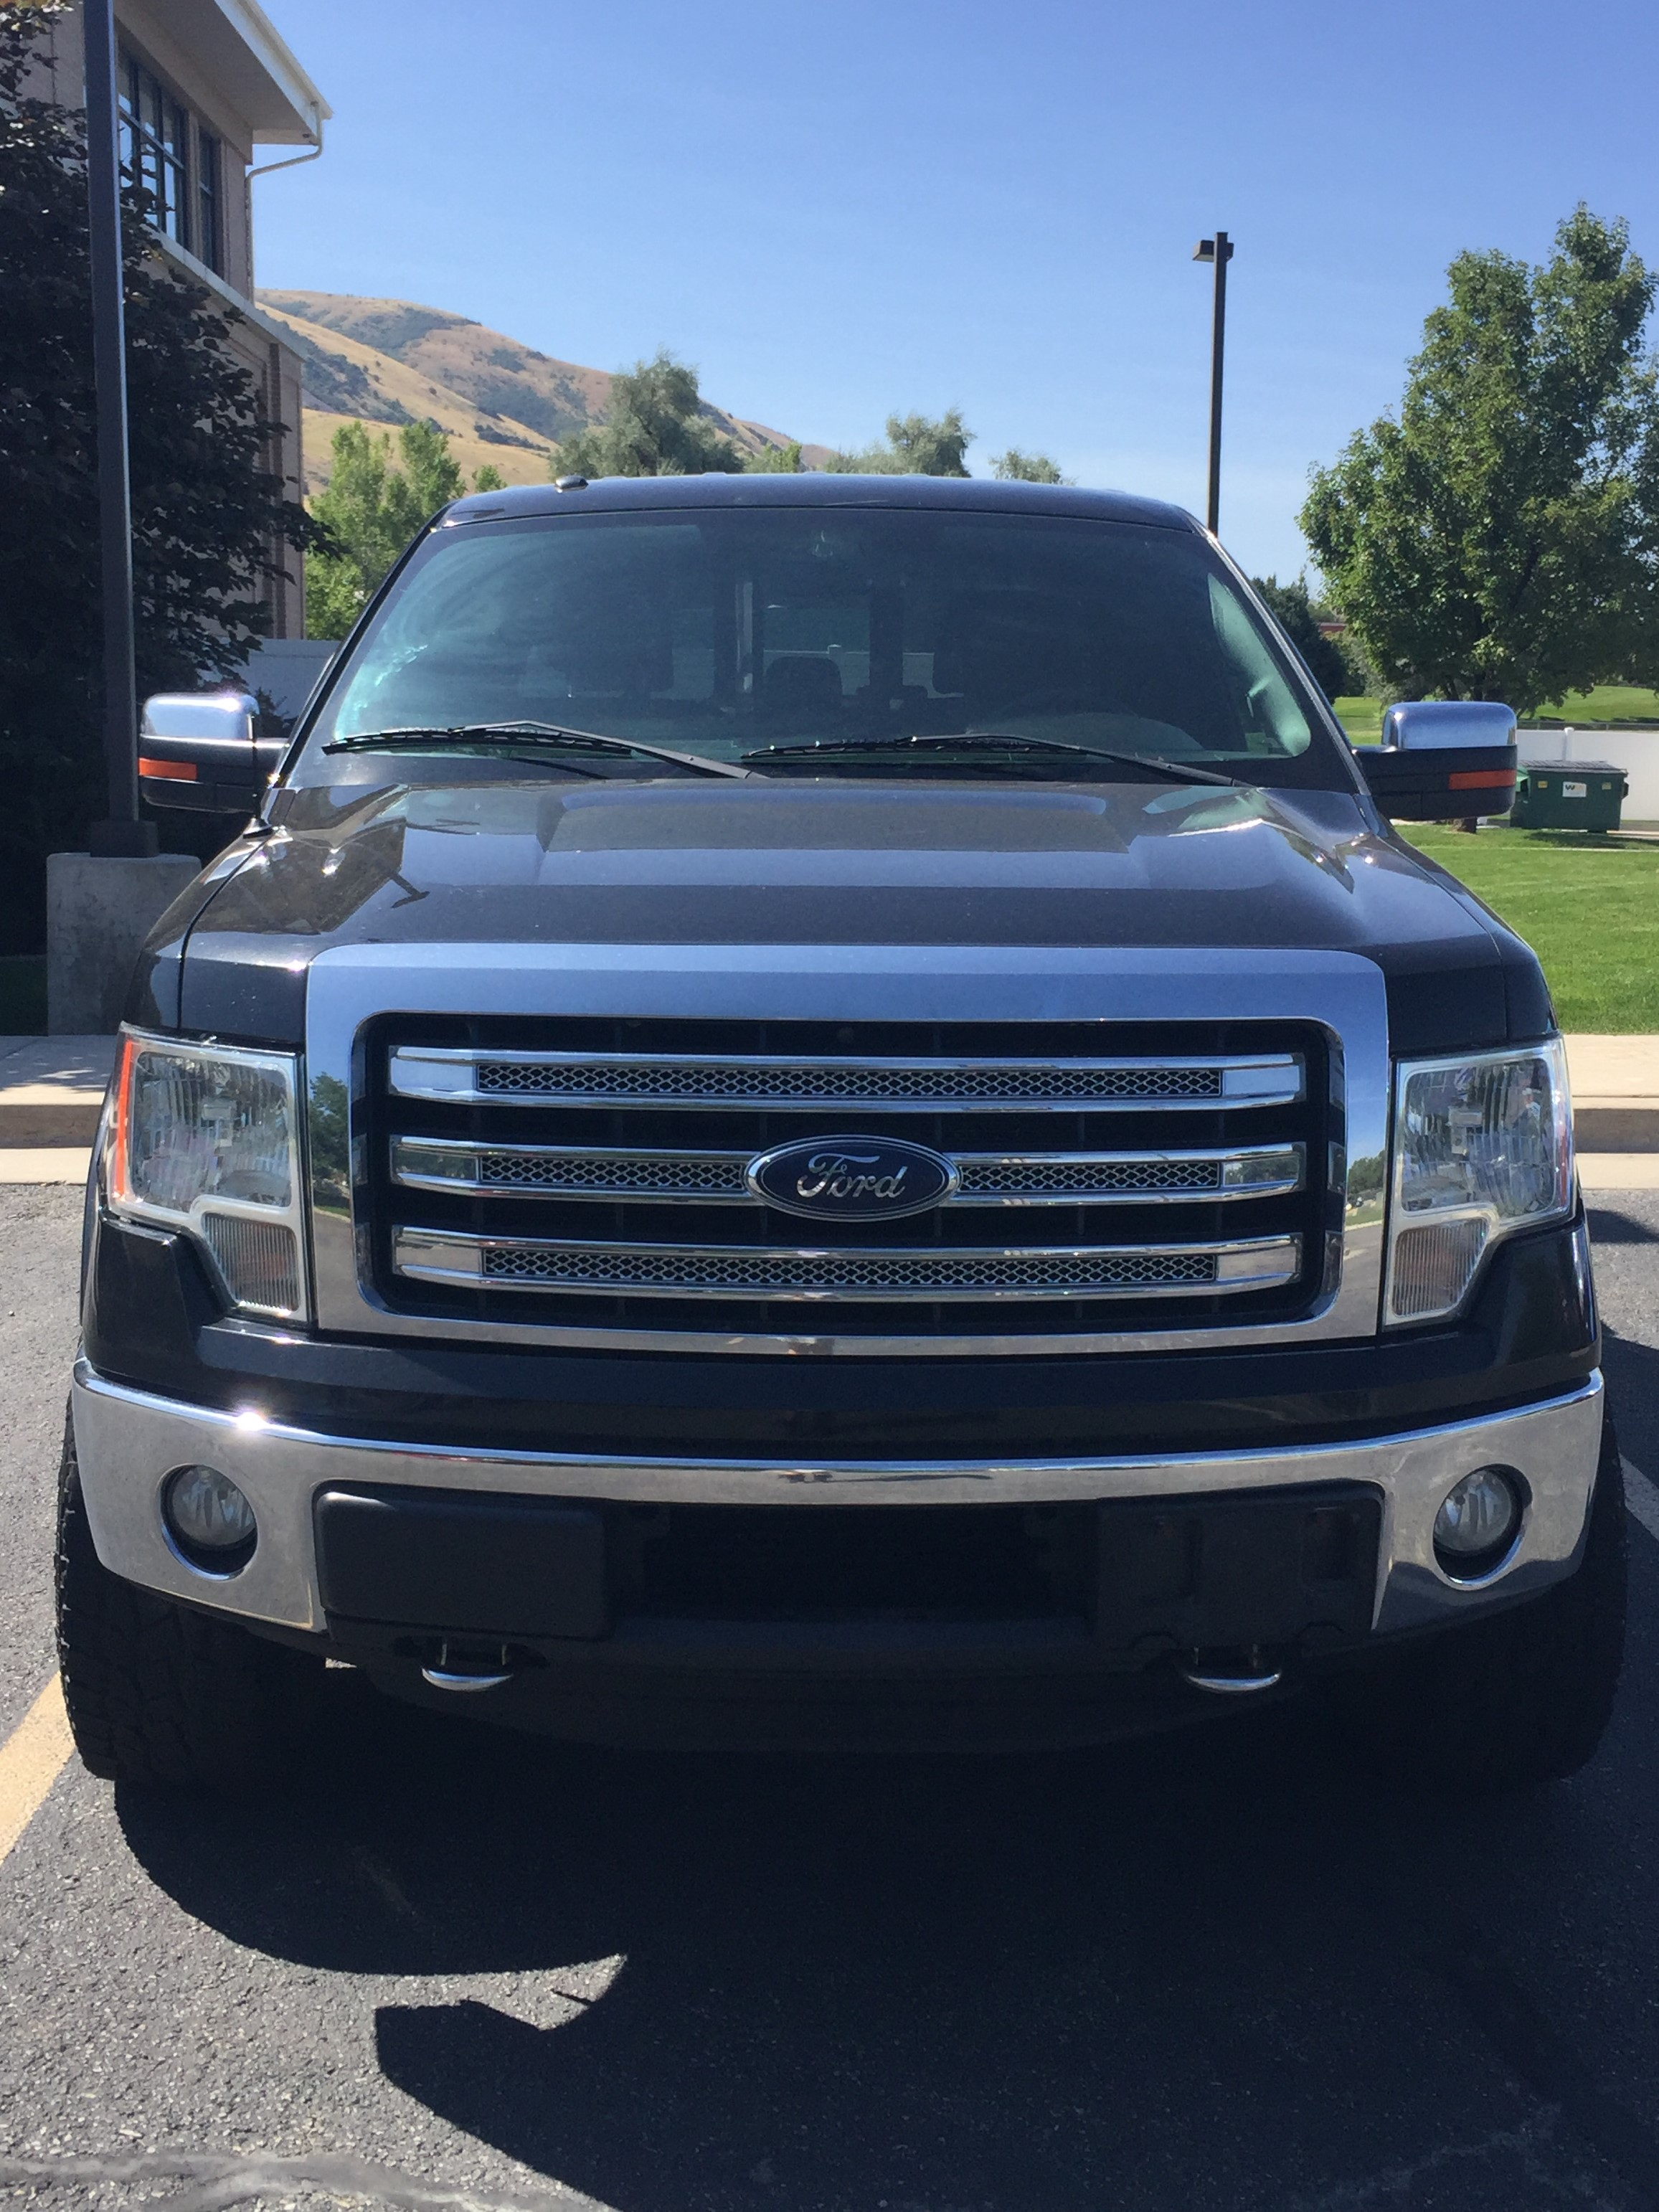 2013 Ford F150 Front.JPG